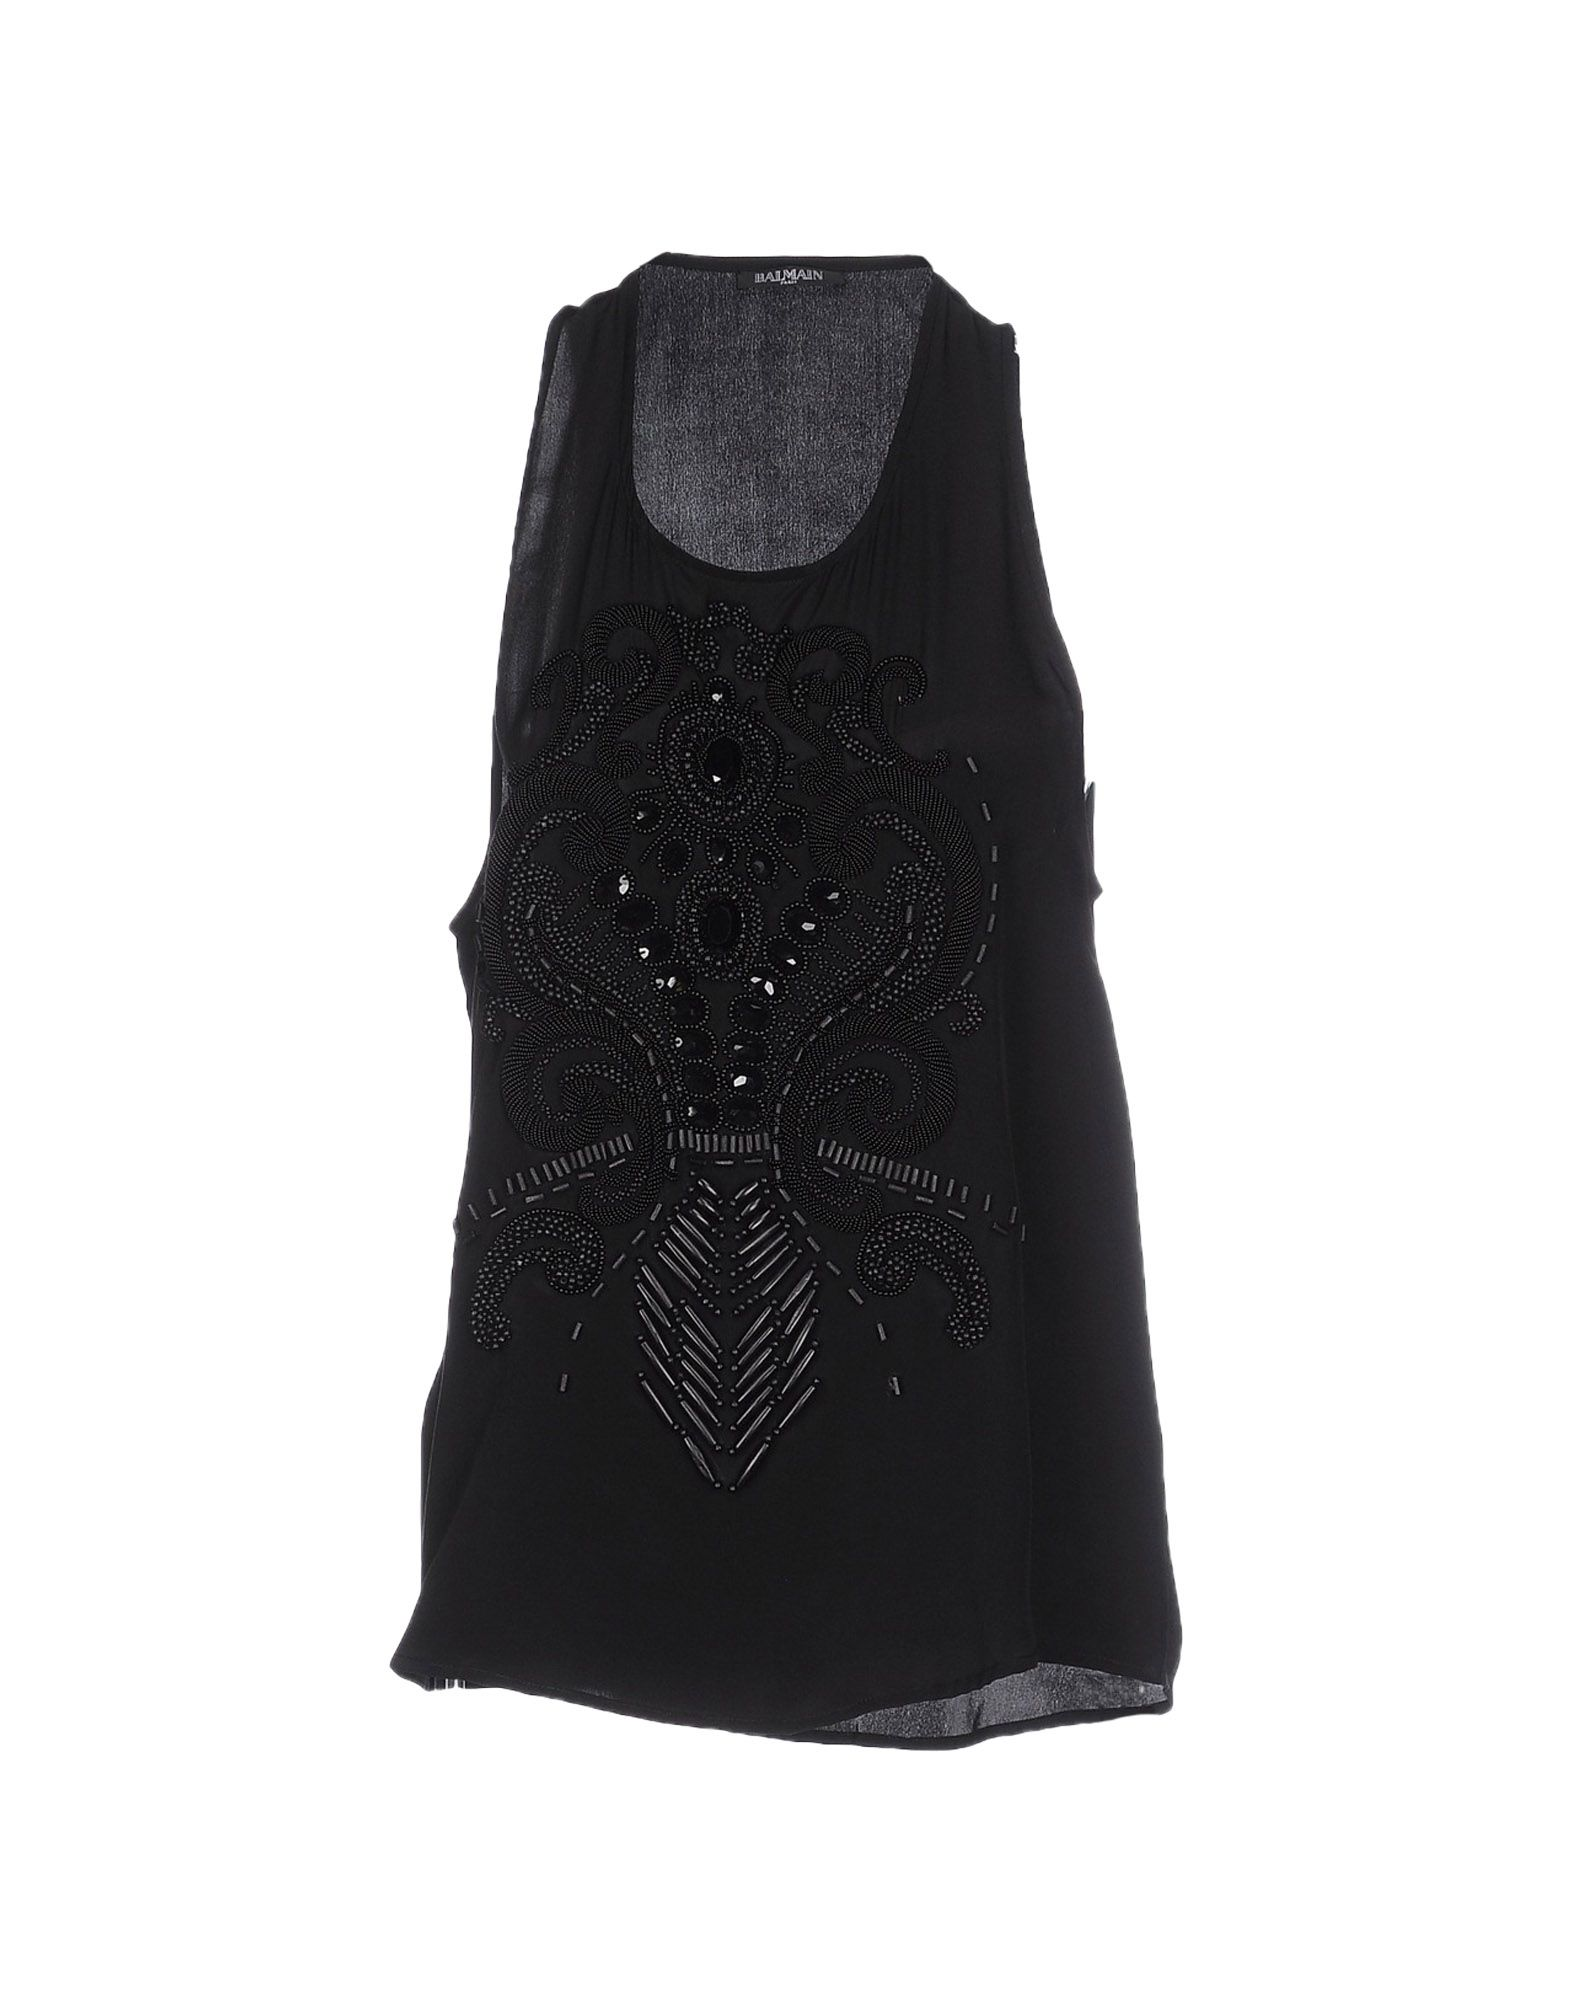 Top Balmain Donna - Acquista online su JPXXLwTPx6